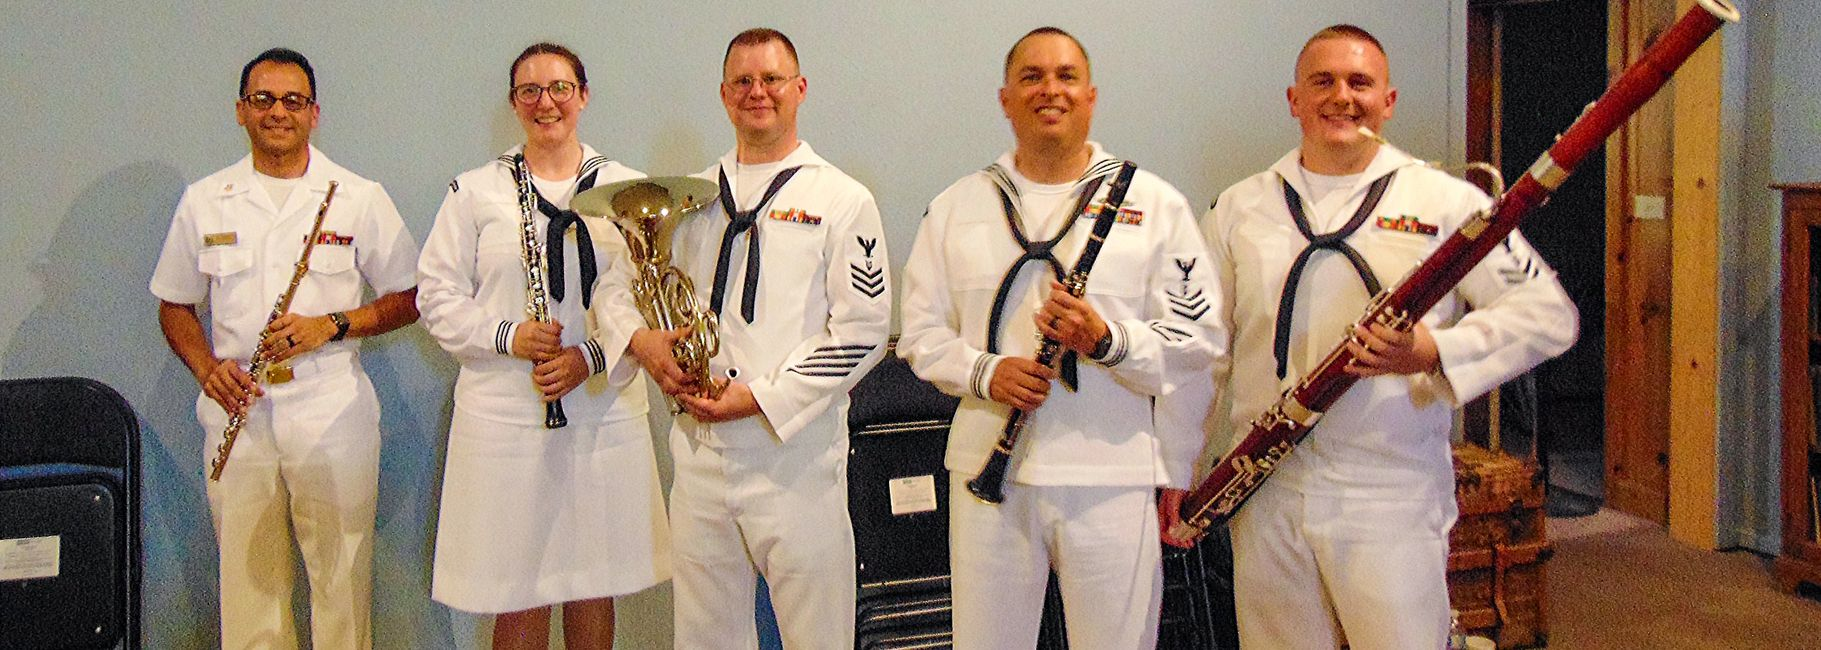 Formed in 1985, the Navy Band Woodwind Quintet maintains a varied repertoire dating from the 18th to